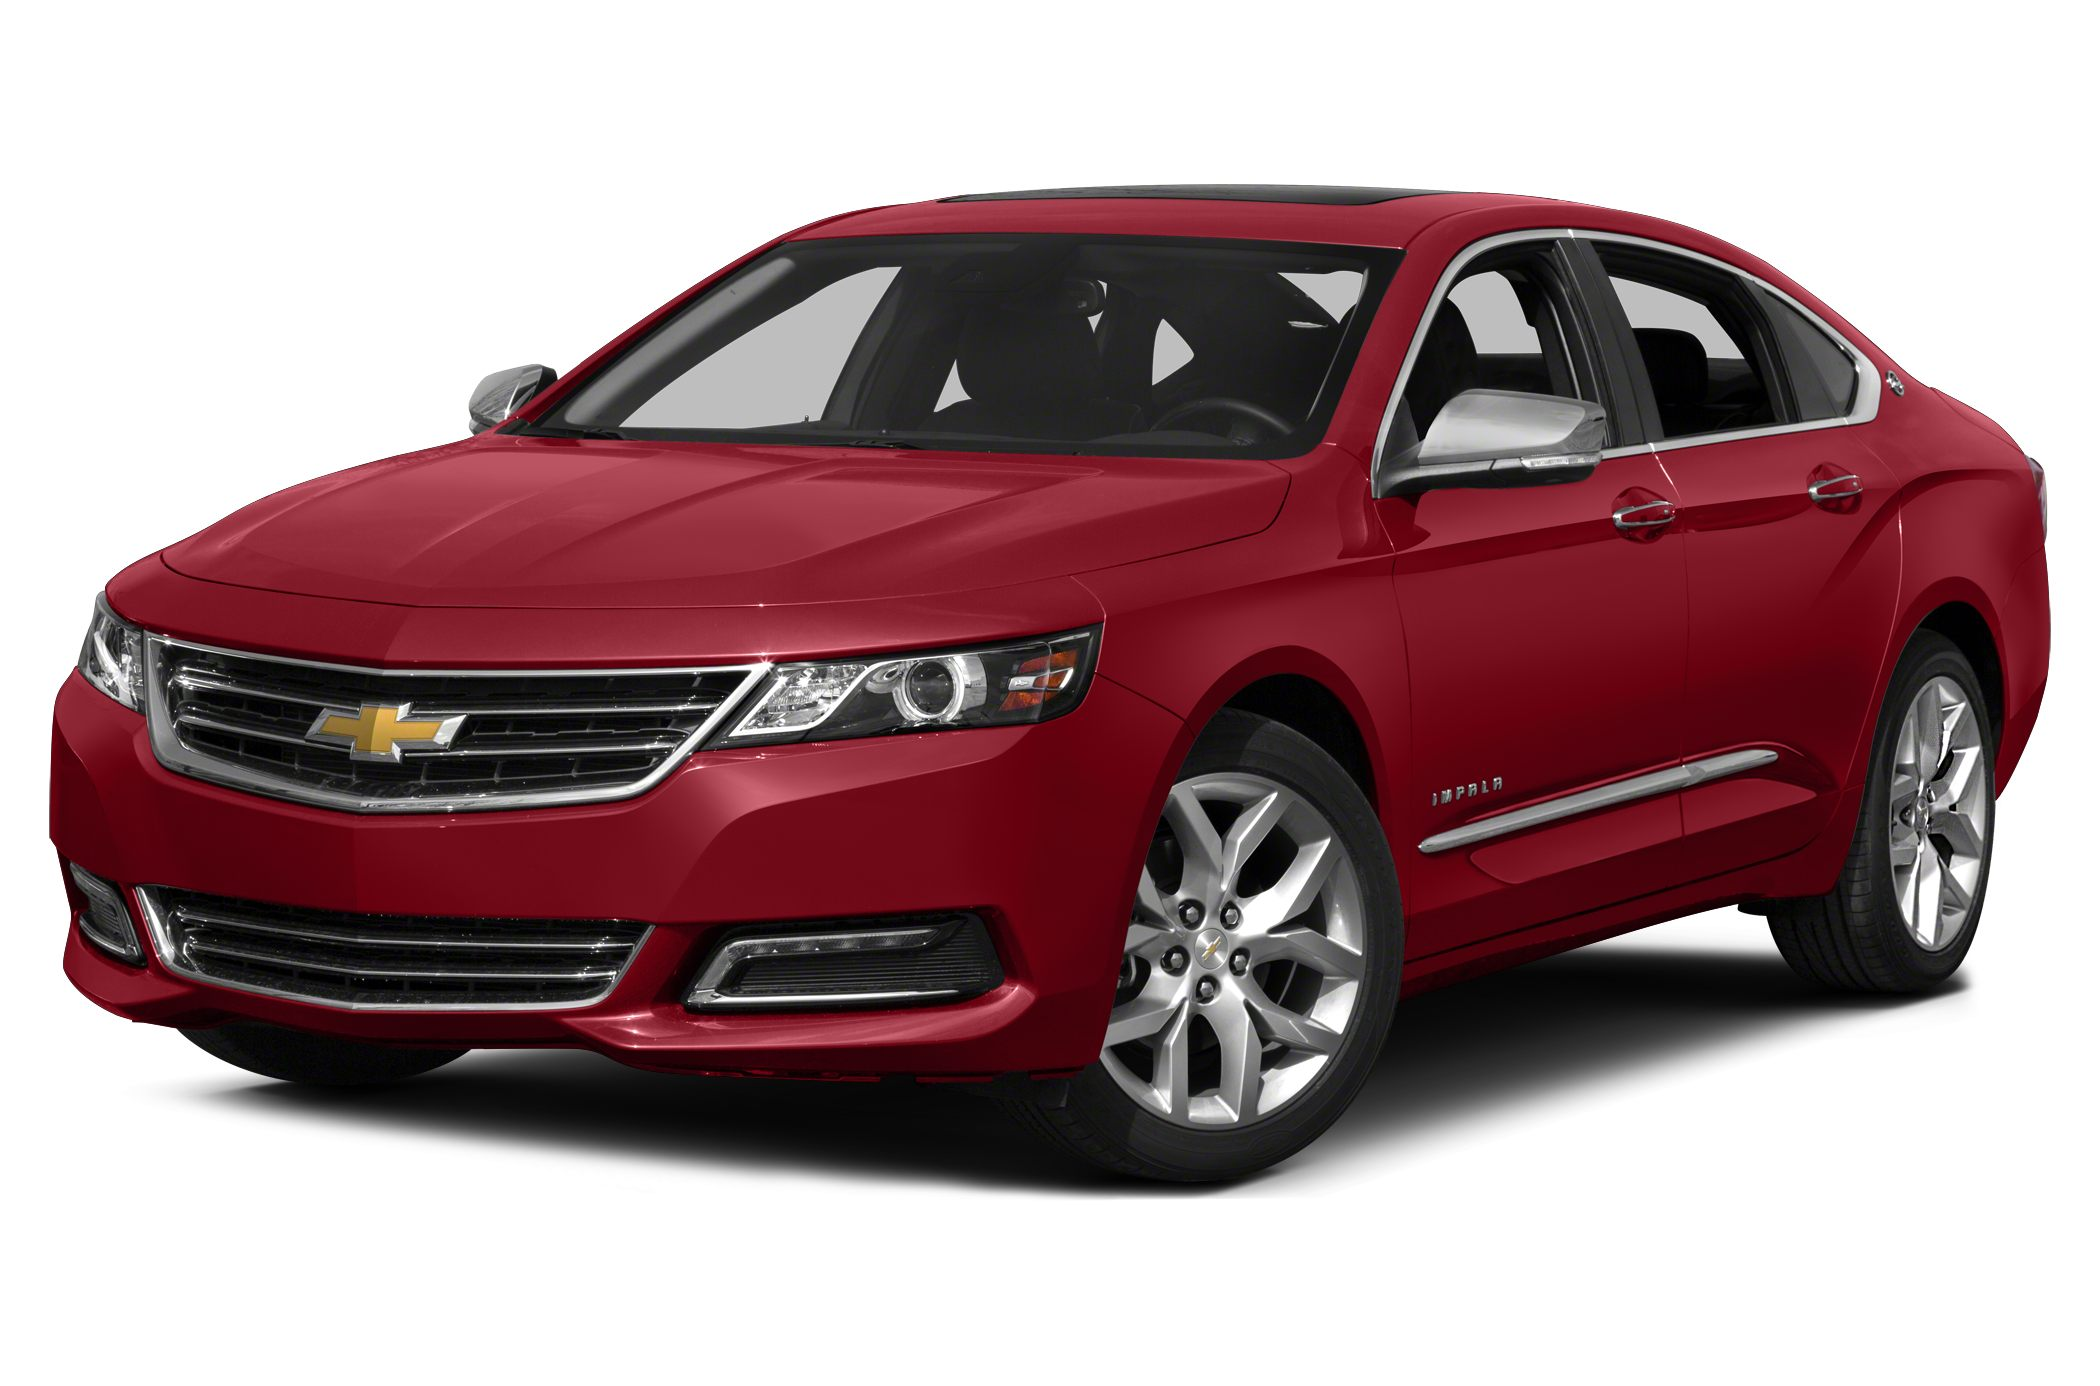 2015 Chevrolet Impala 2LT Sedan for sale in Little Rock for $31,125 with 0 miles